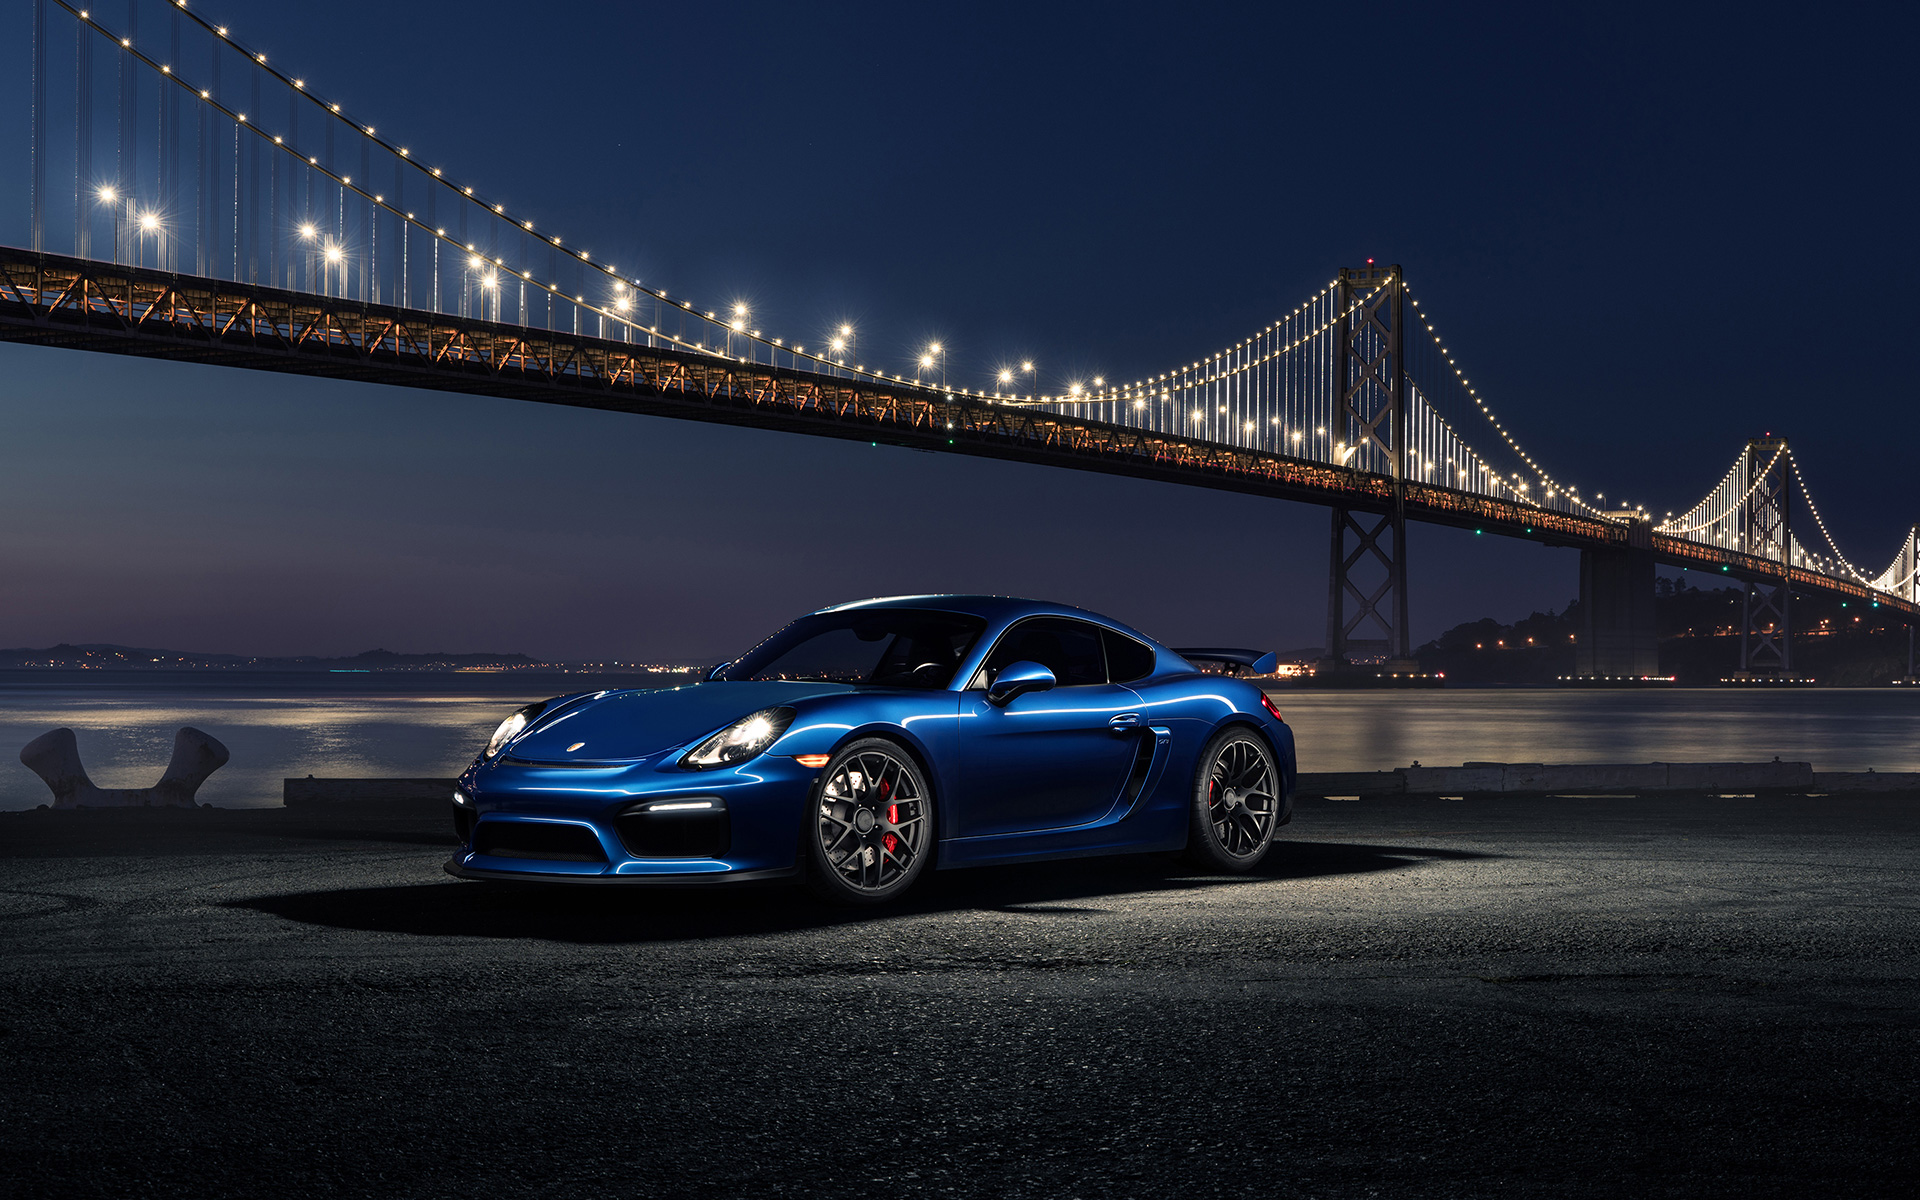 Porsche Cayman Gt4 Avant Garde Wheels Wallpaper Hd Car